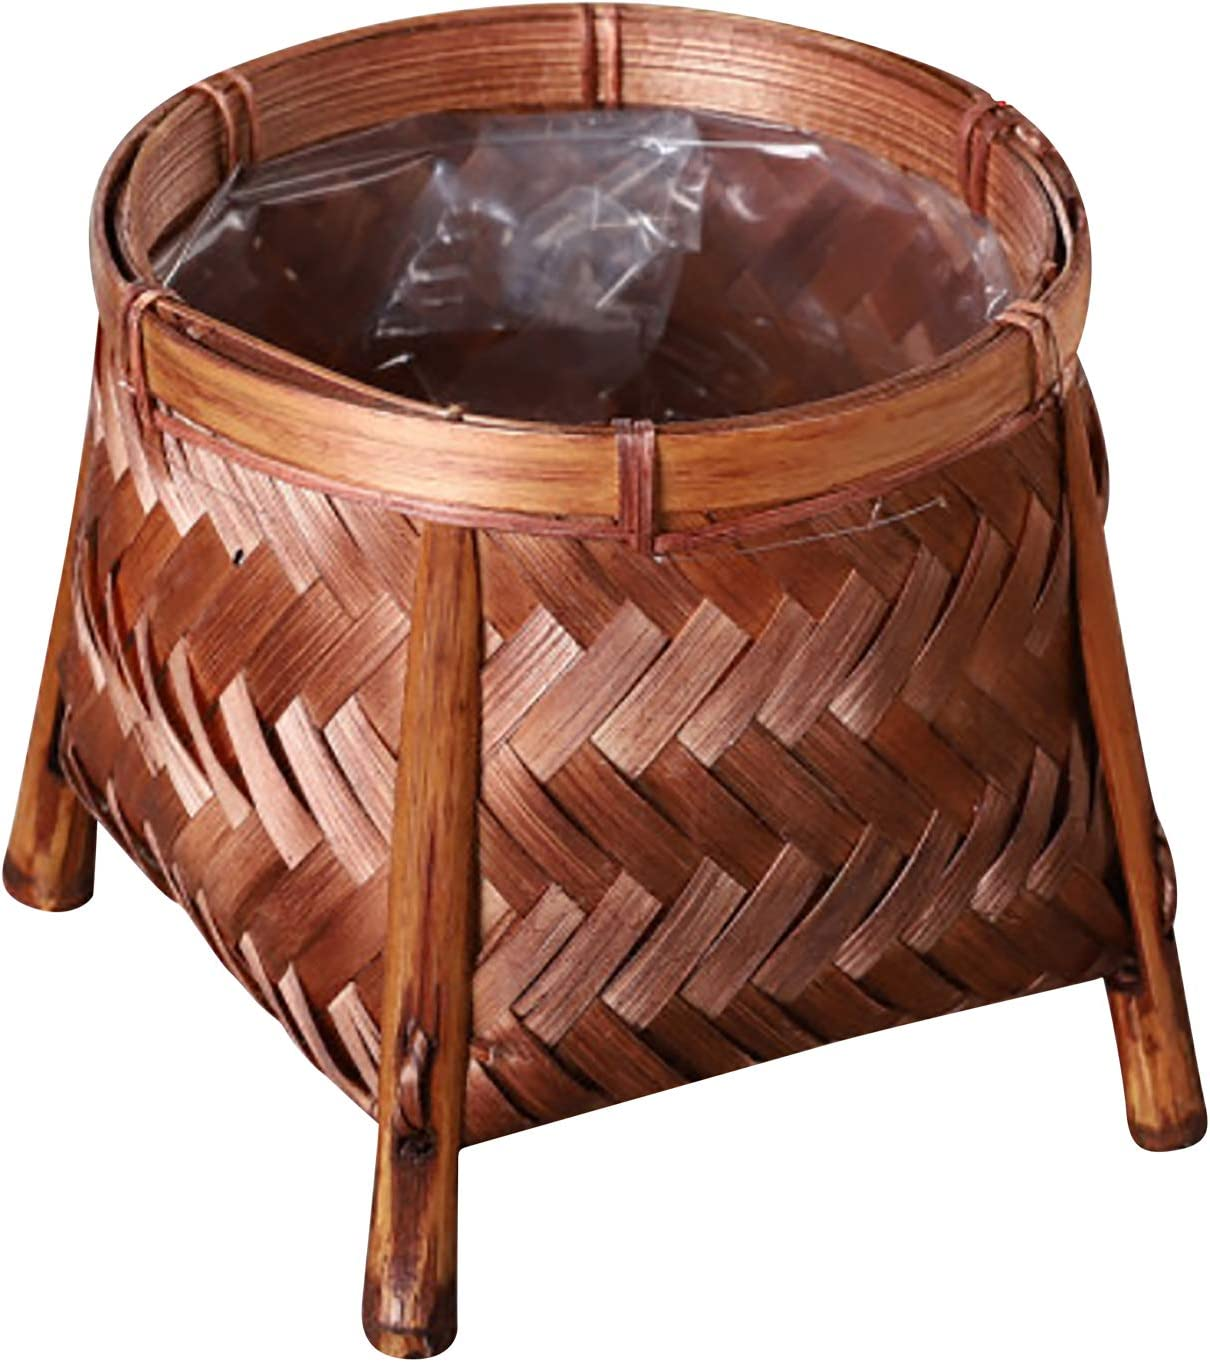 Rattan Plant Stand - Hand Woven Rattan Straw Basket for Plant Pots - Reddish Brown Plant Basket - Plant Stands for Indoor Plants - Japanese Garden Flower Pots with Legs - Tropical Modern Decor